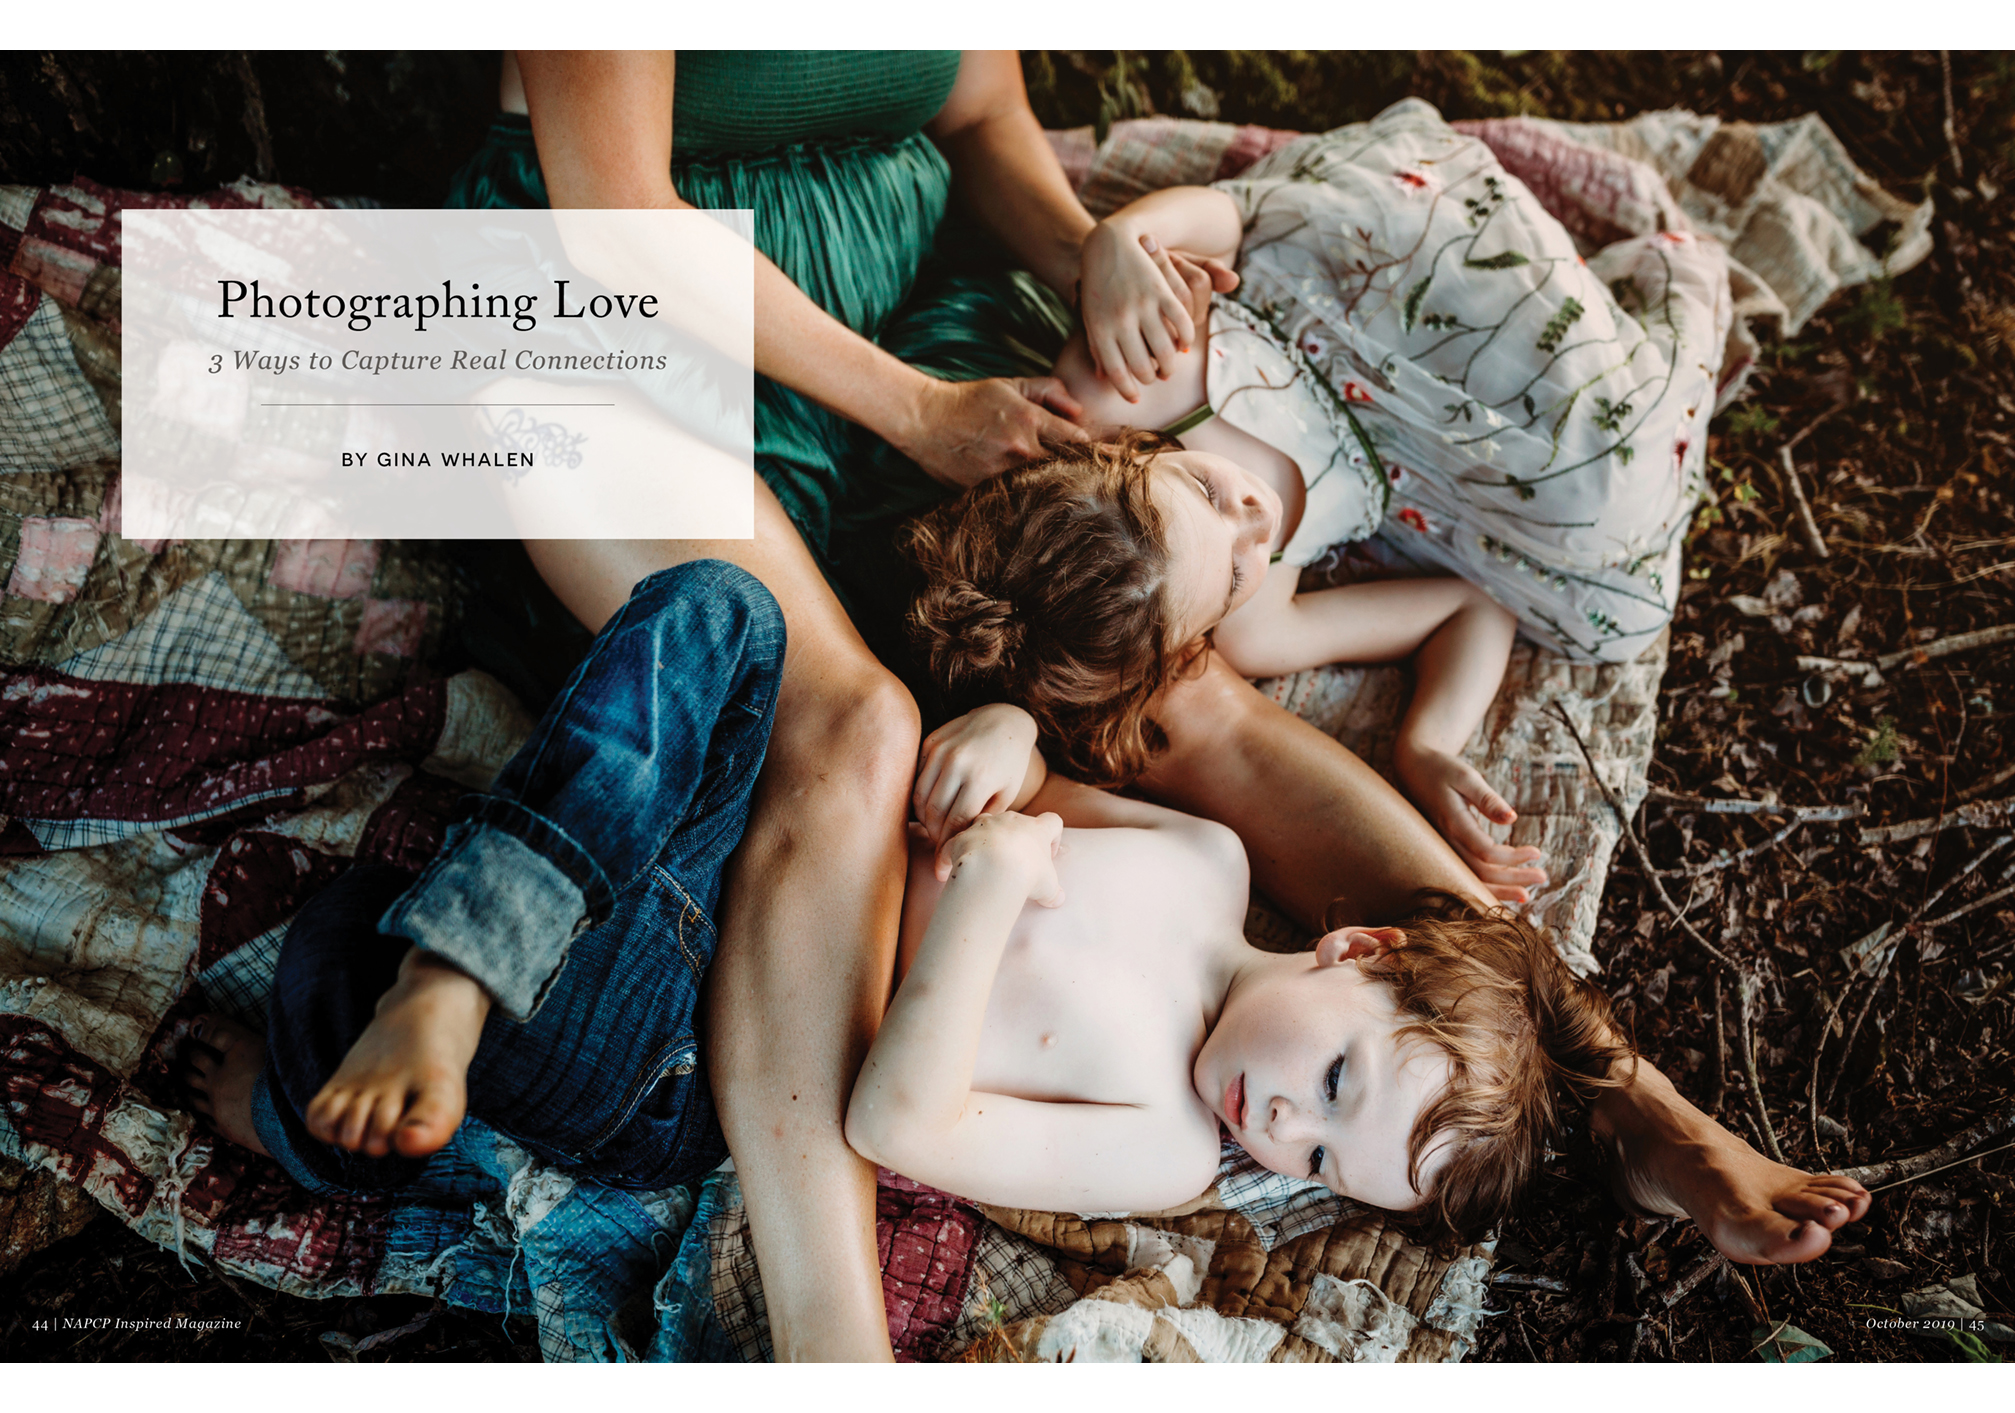 Photographing Love, 3 Ways to Capture Real Connections, by Gina Whalen